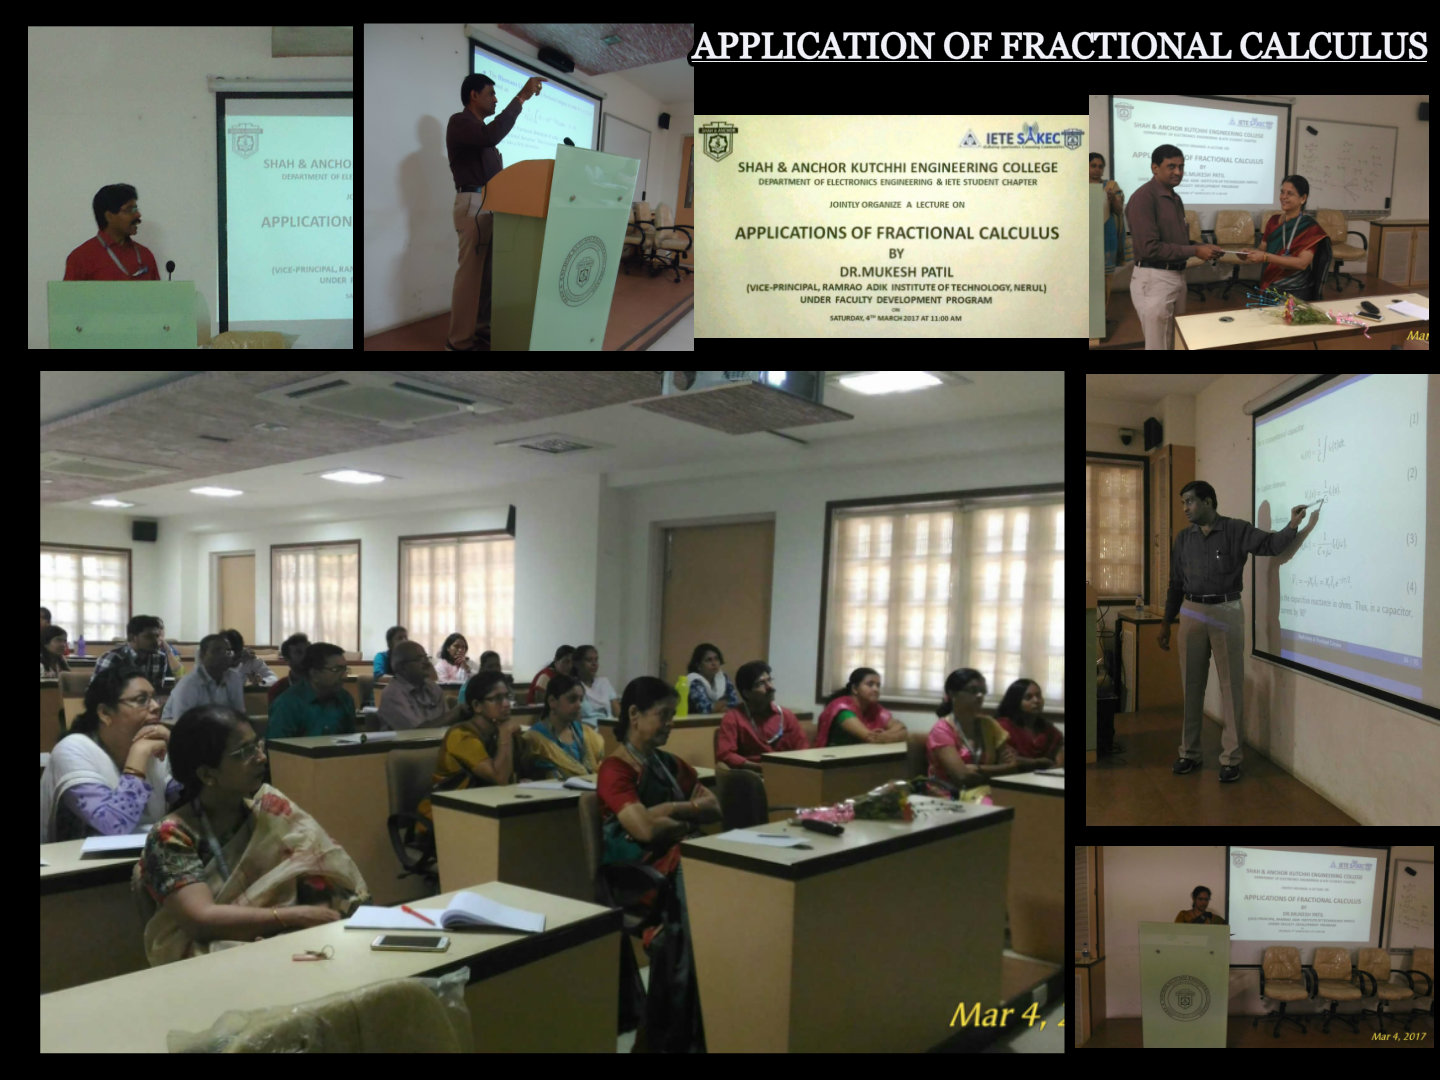 Application of Fractional Calculus